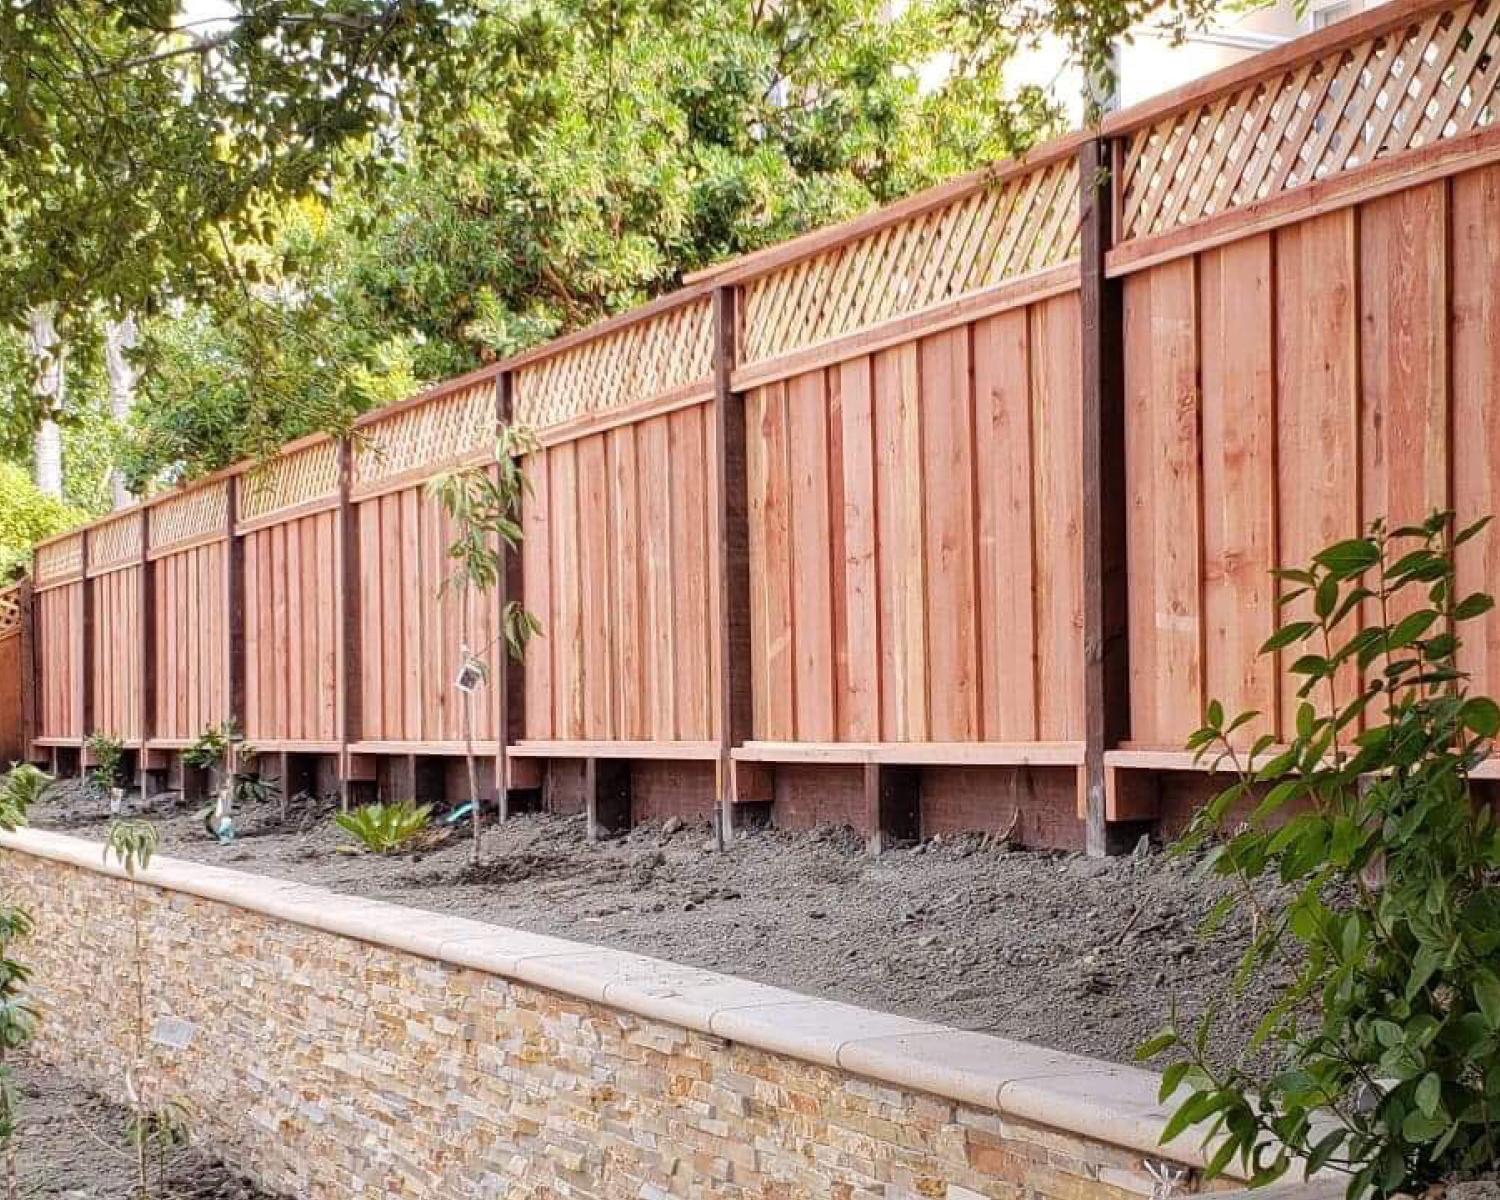 san-jose-ca-picture-frame-board-on-board-with-diagonal-lattice-and-an-integrated-1-retaining-wall